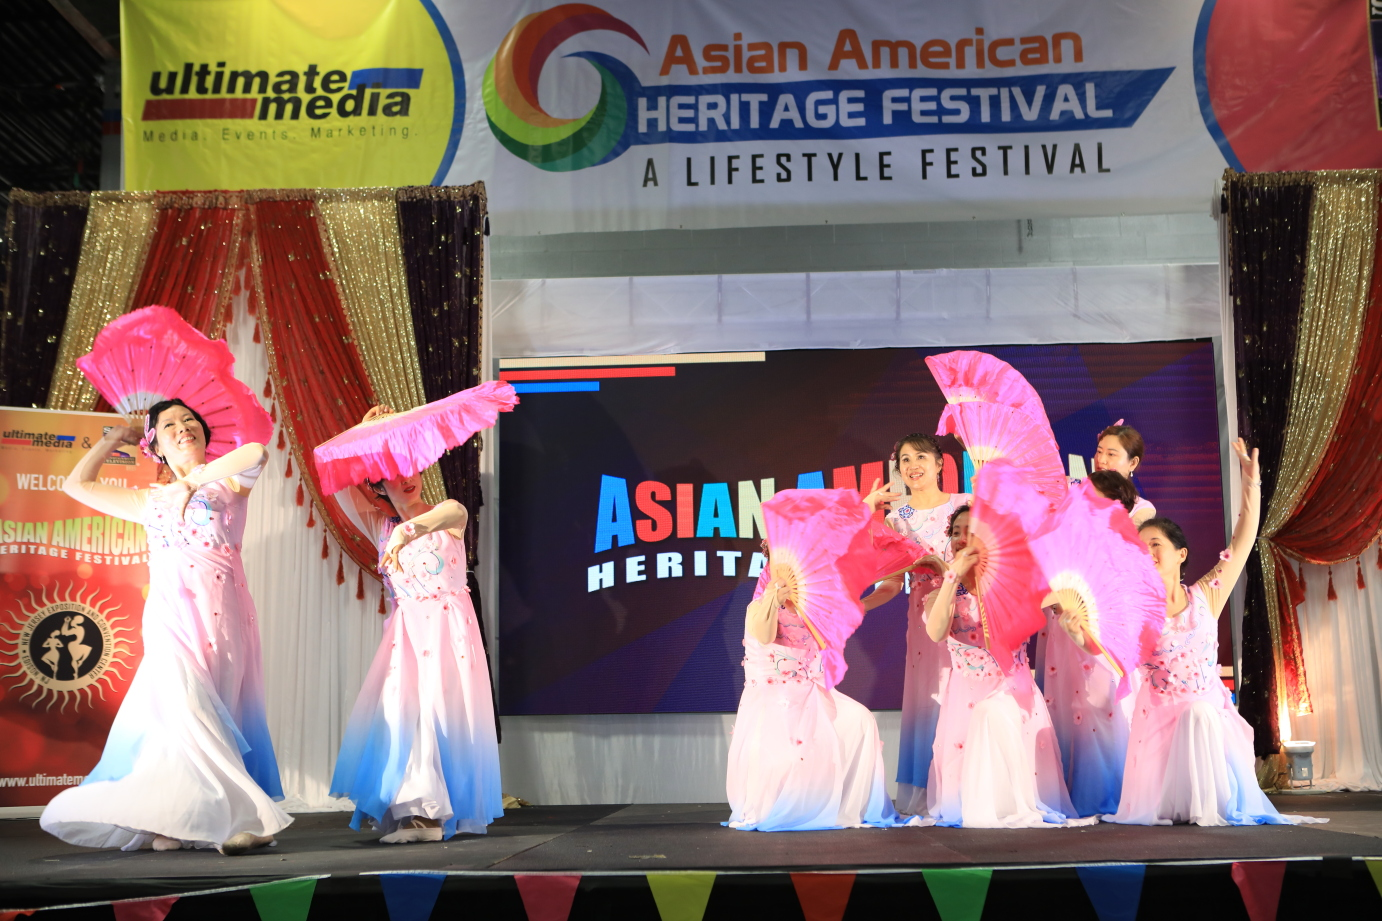 Asian American Heritage Festival brings thousands to Edison, N J